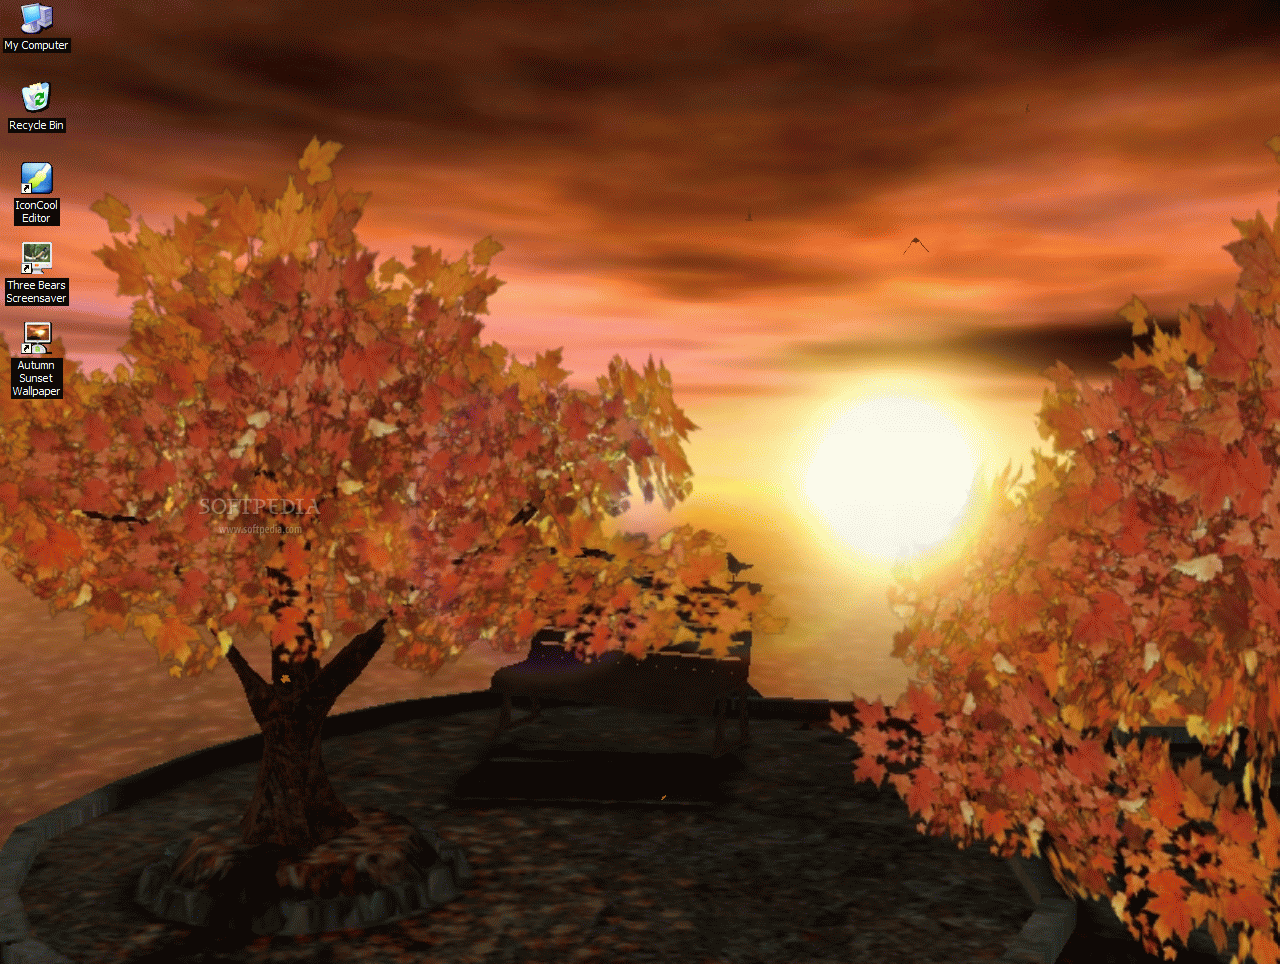 Screenshot 1 of Autumn Sunset - Animated 3D Wallpaper